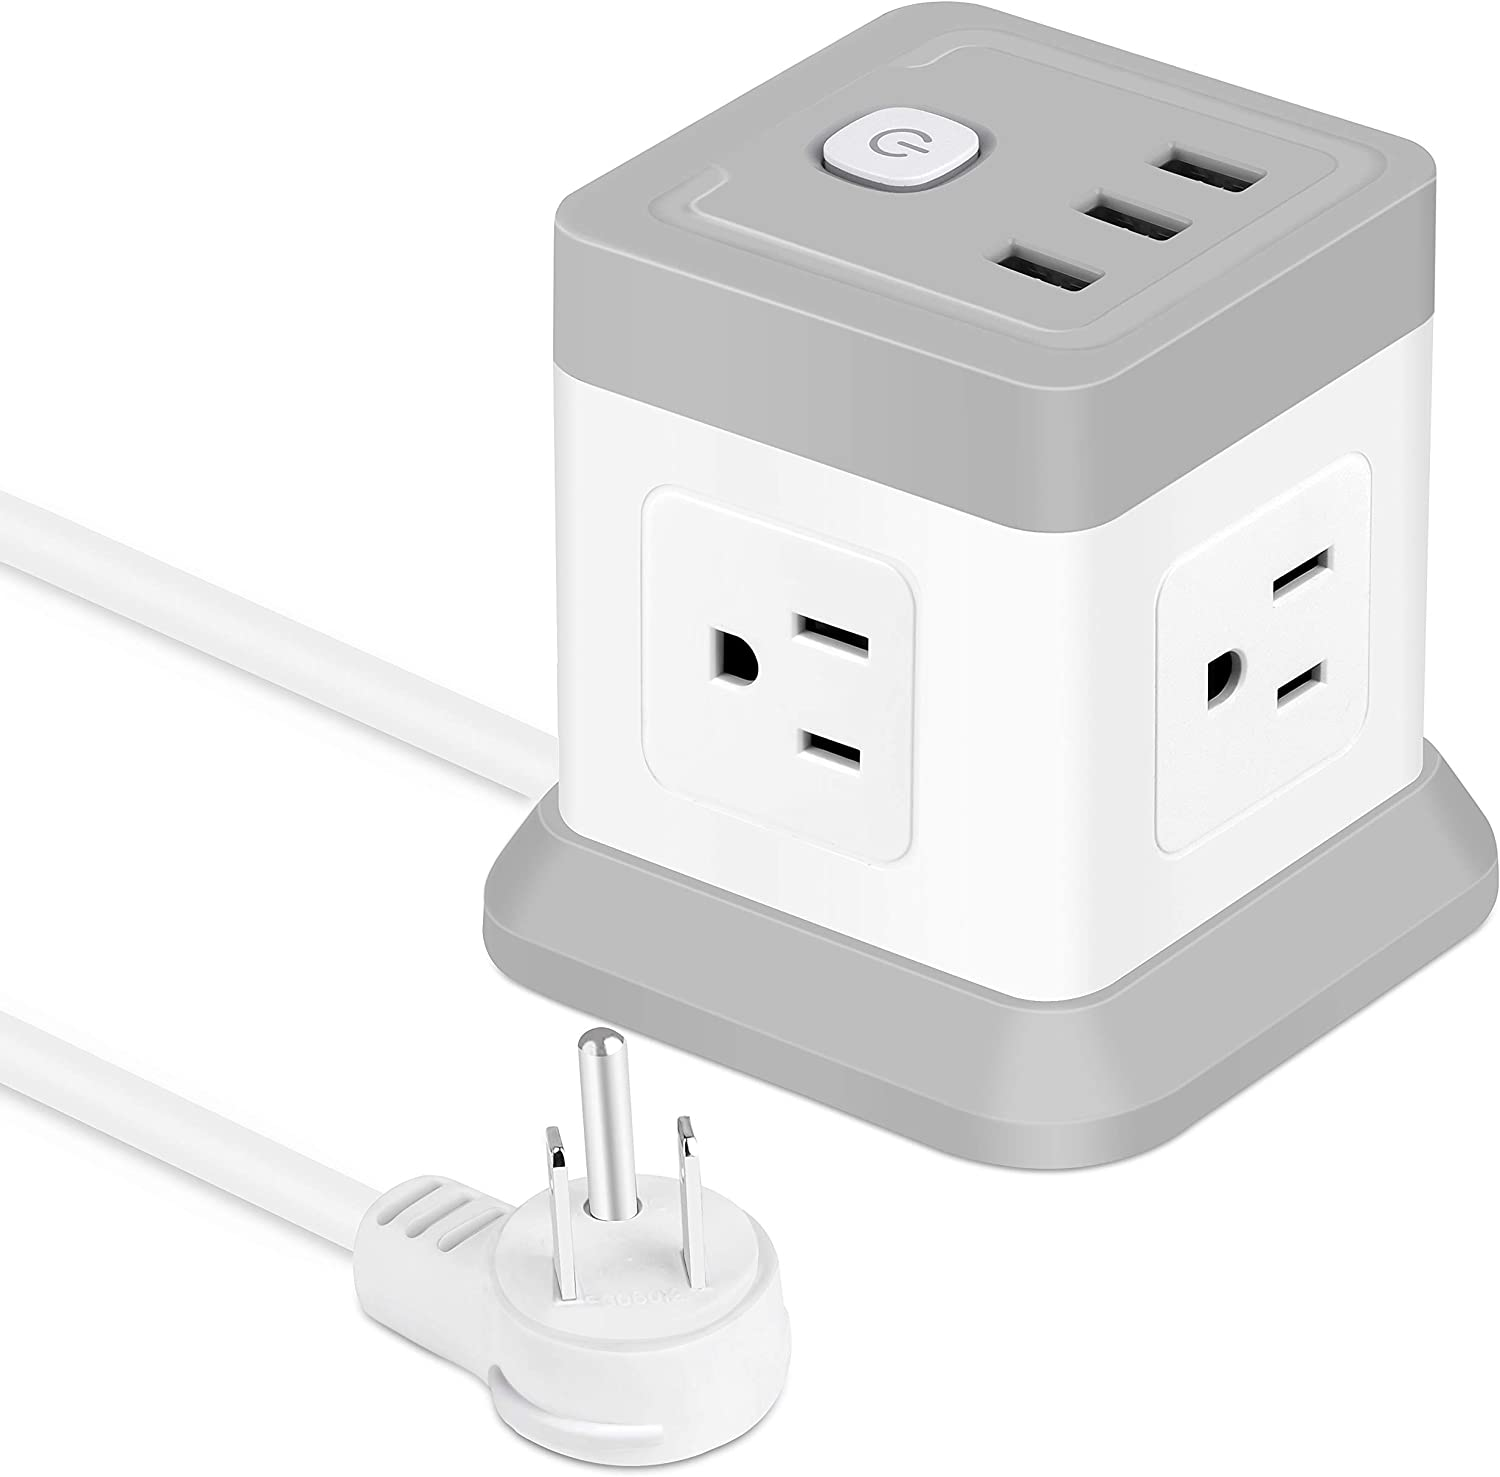 BEVA Power Strip with USB, Cube Power Strip Flat Plug with 4 Outlets 3 USB Ports 5ft Extension Cord, Small Desktop Charging Station Multi Protection for Travel, Cruise Ship, Office, Dorm Room-White